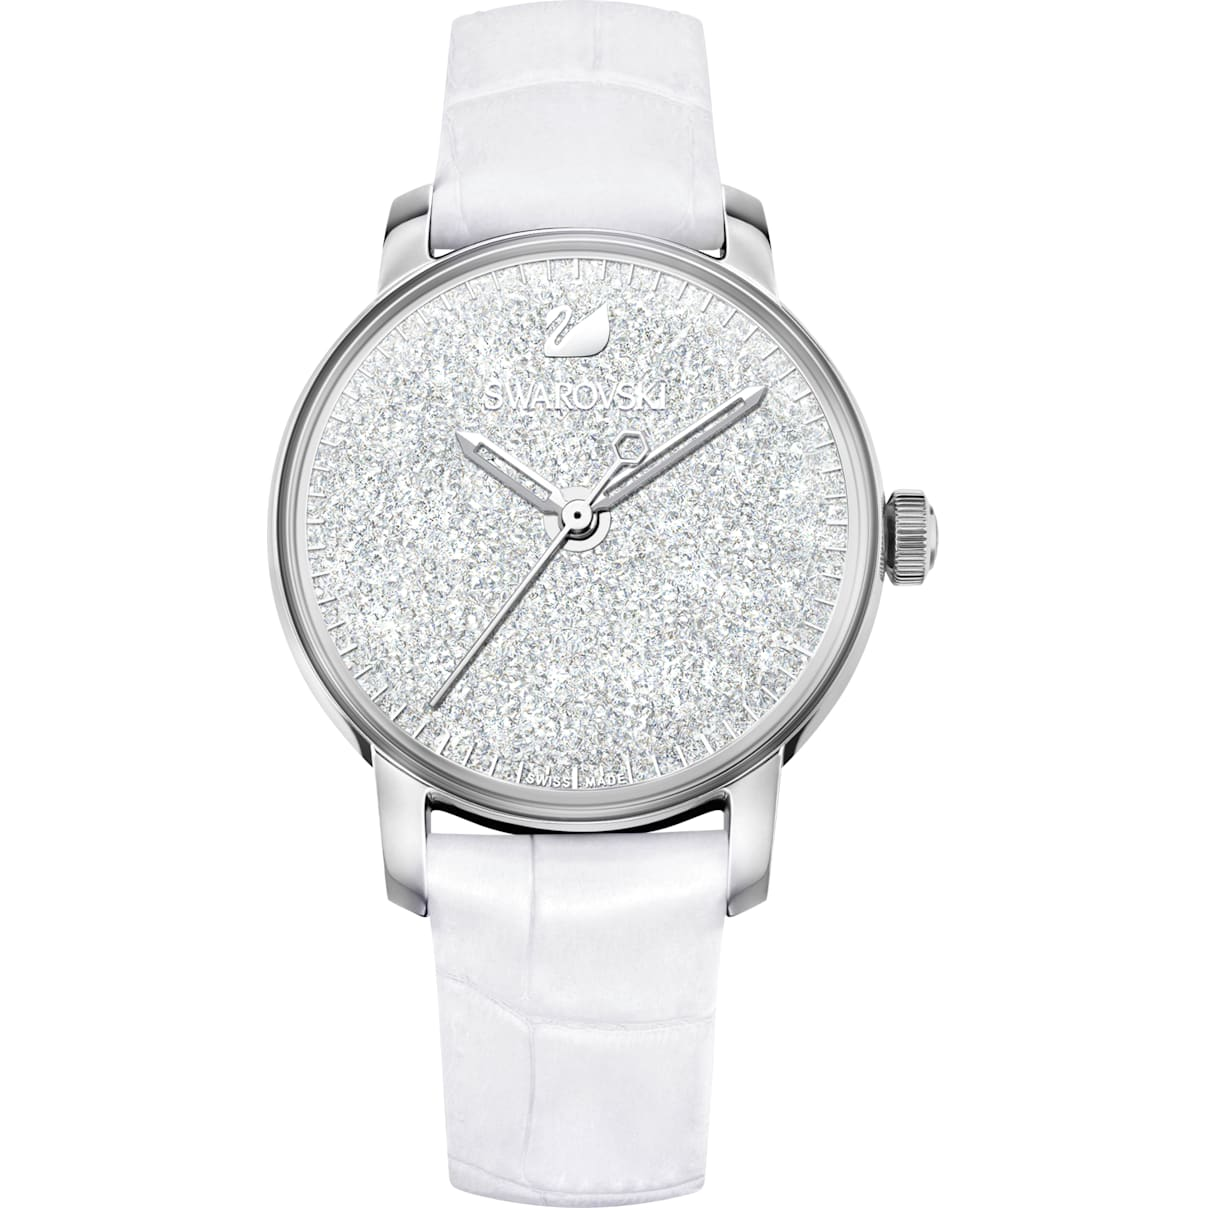 Swarovski Crystalline Hours Watch, Leather strap, White, Stainless steel